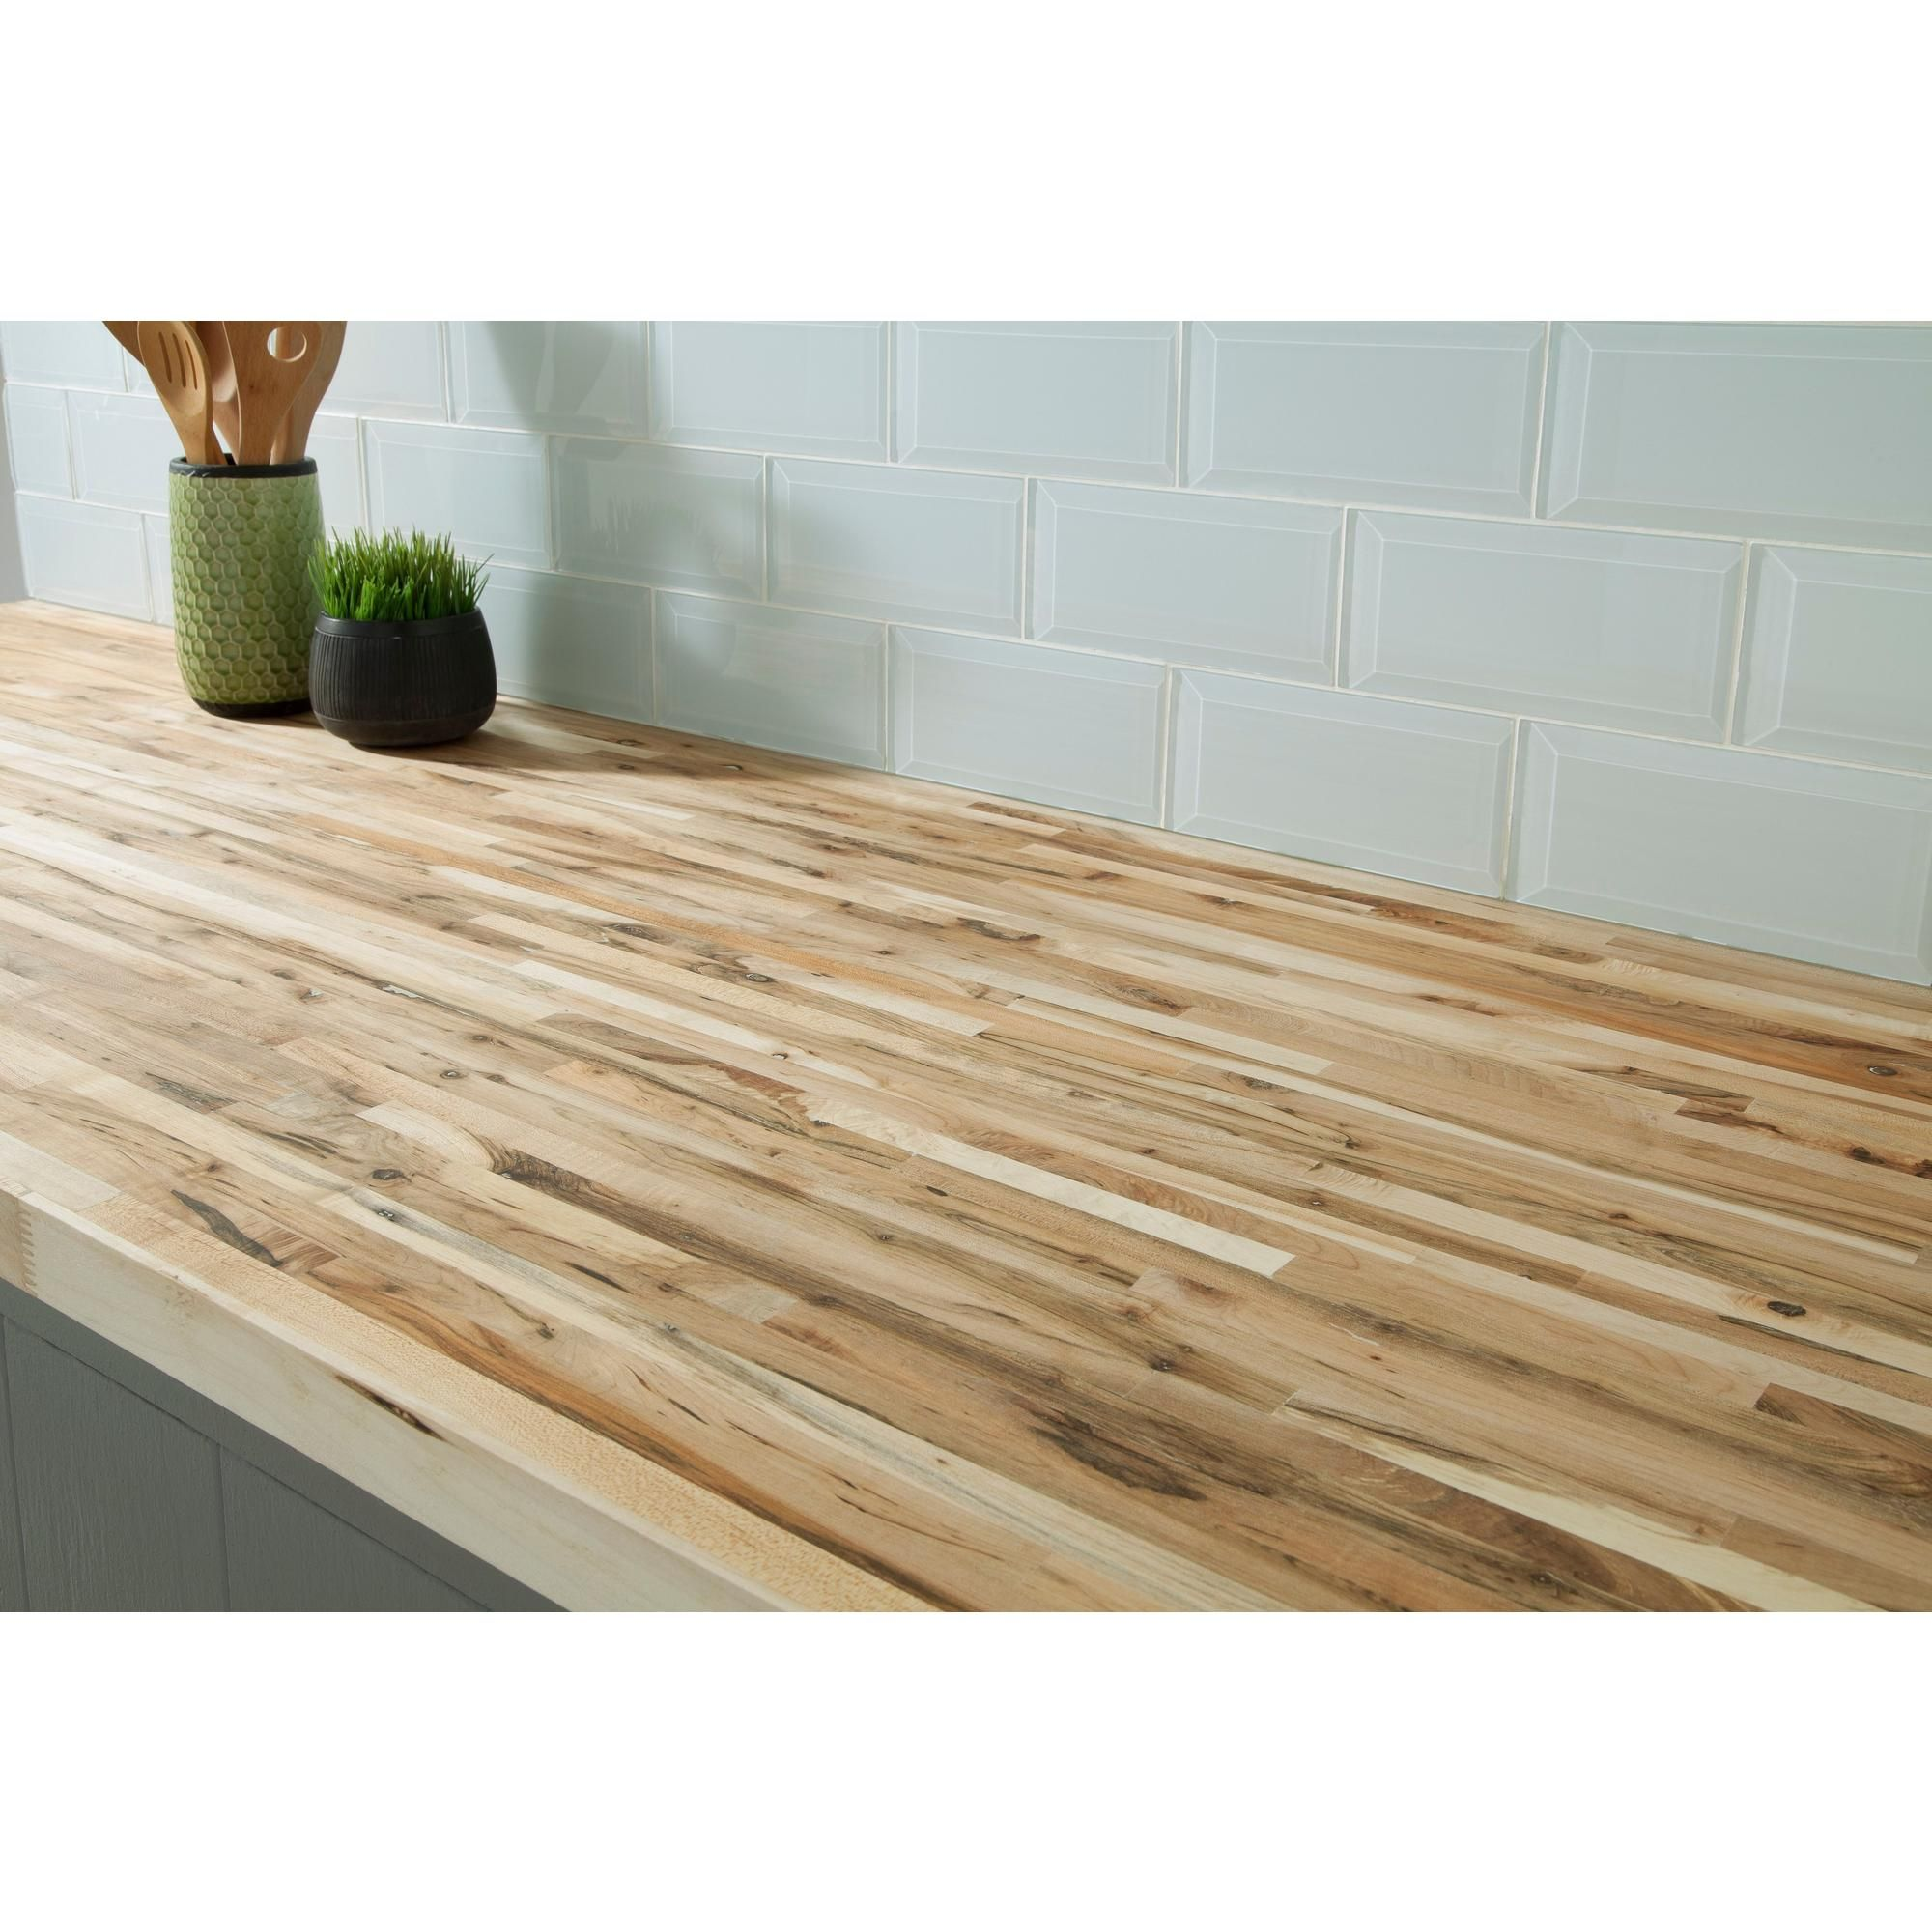 Maple Builder Grade Butcher Block Countertop 8ft Butcher Block